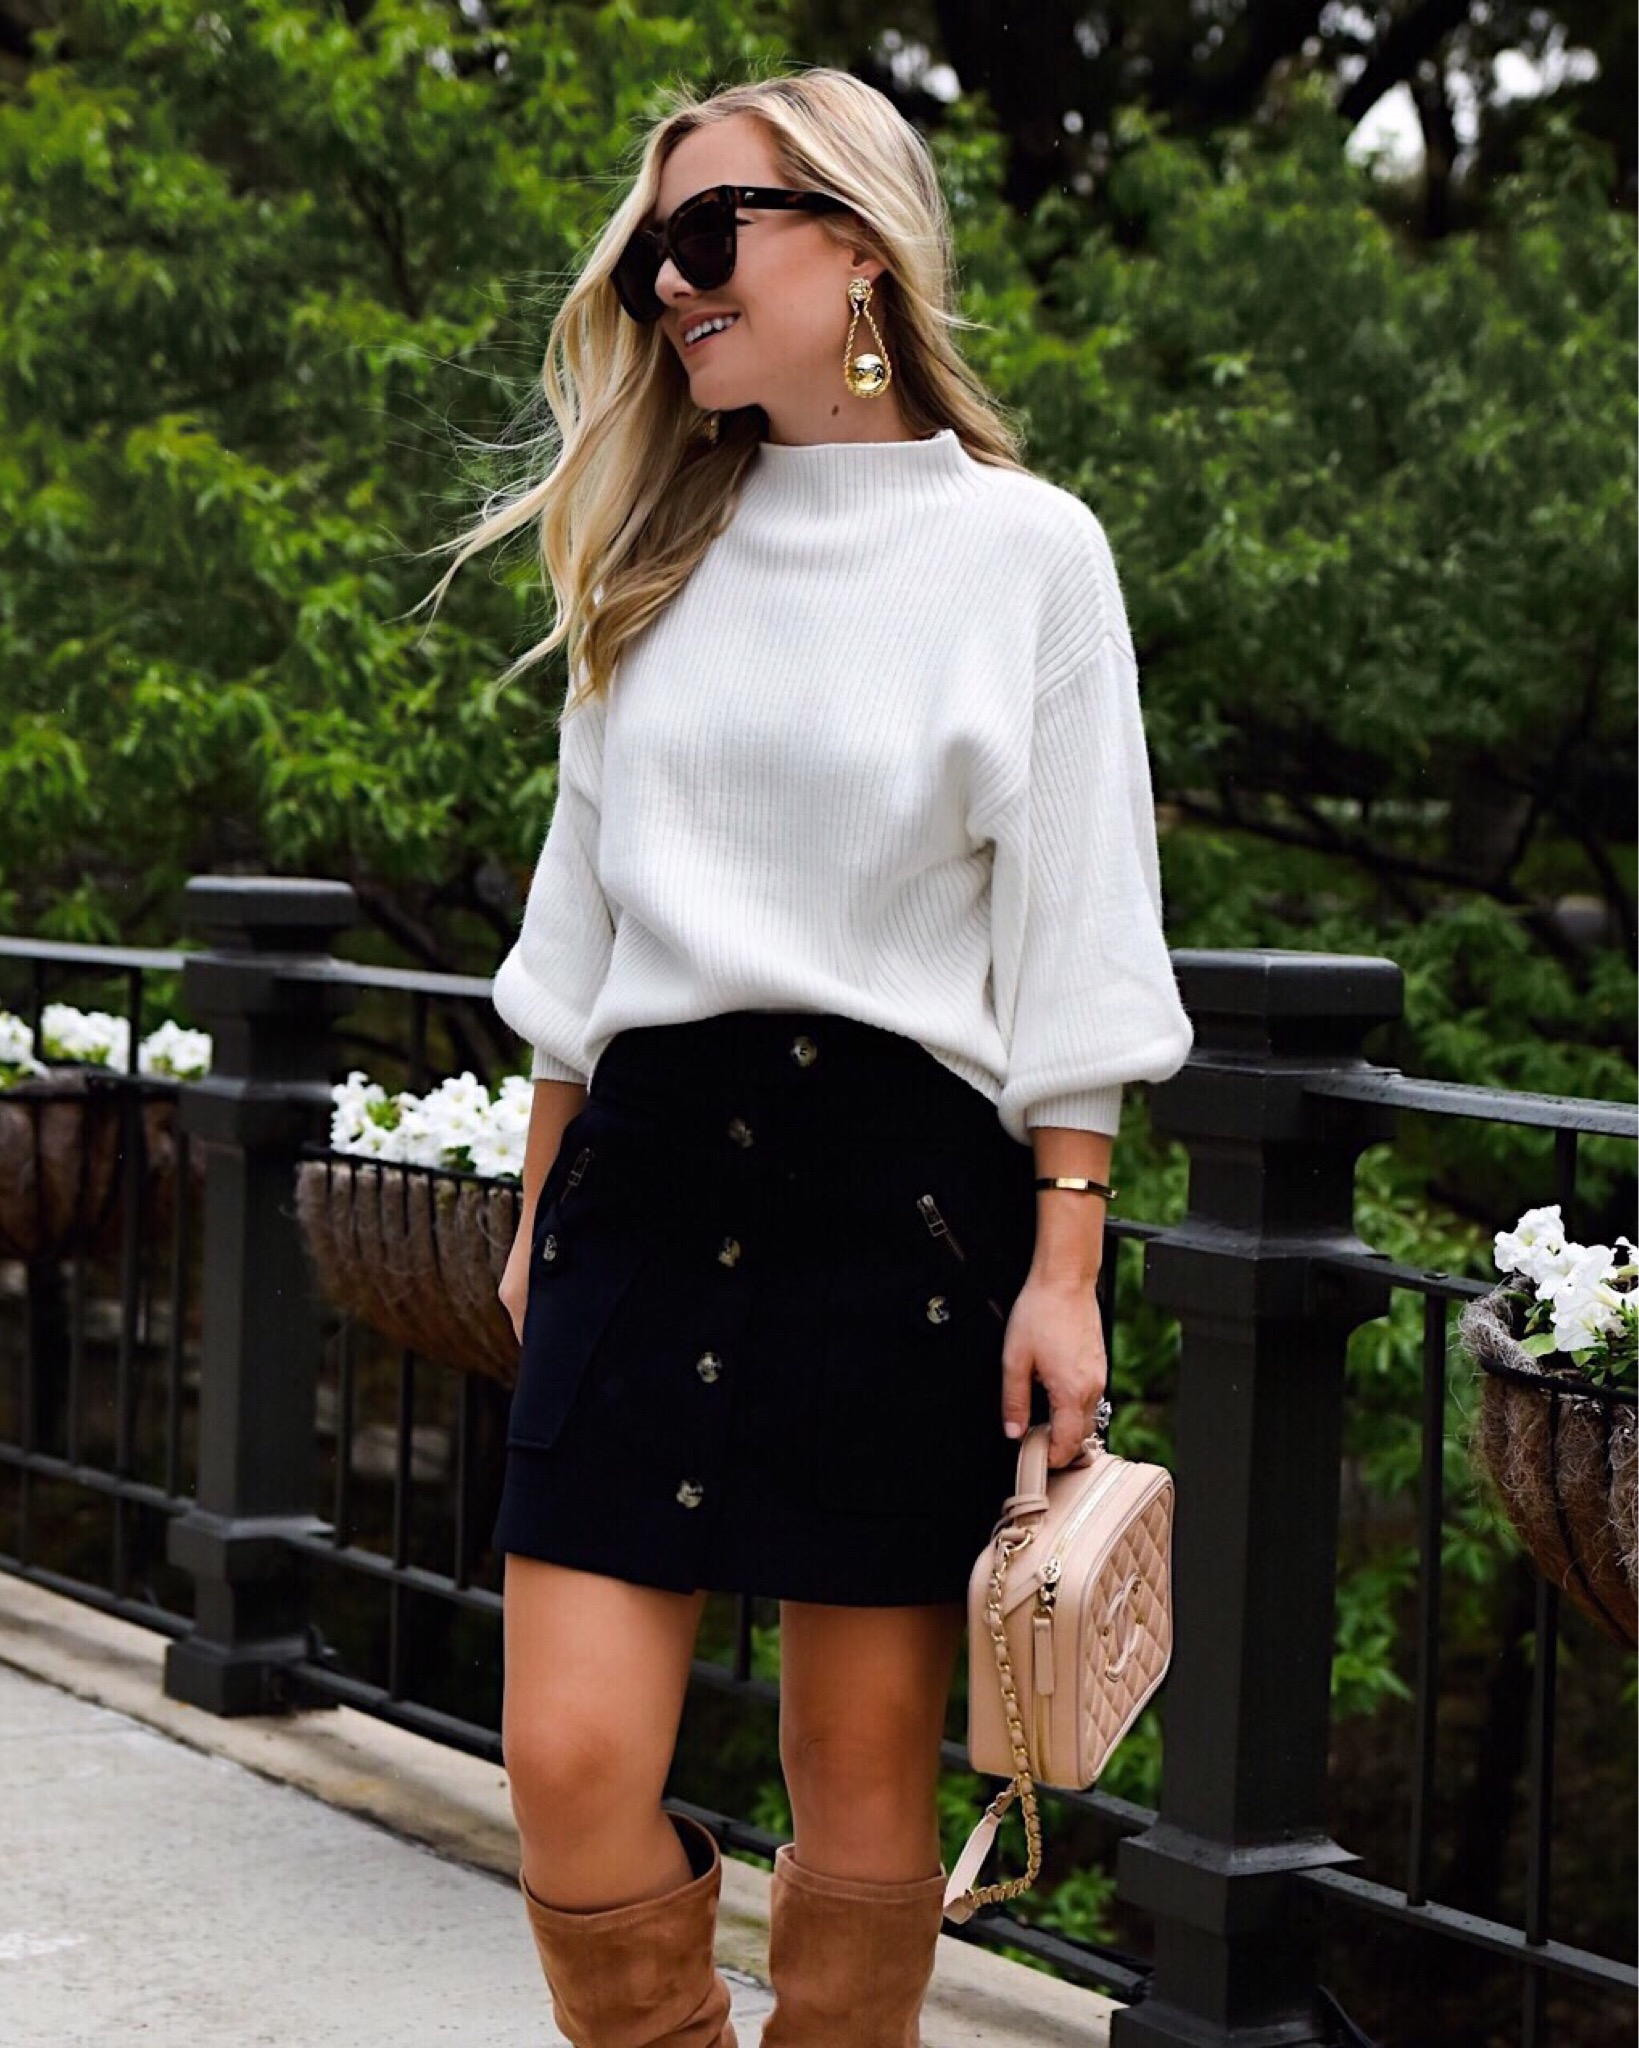 Lo-Murphy-Fall-outfit-mini-skirt-fall-look-ootd-dallas-blogger-otk-boots-mock-neck-sweater